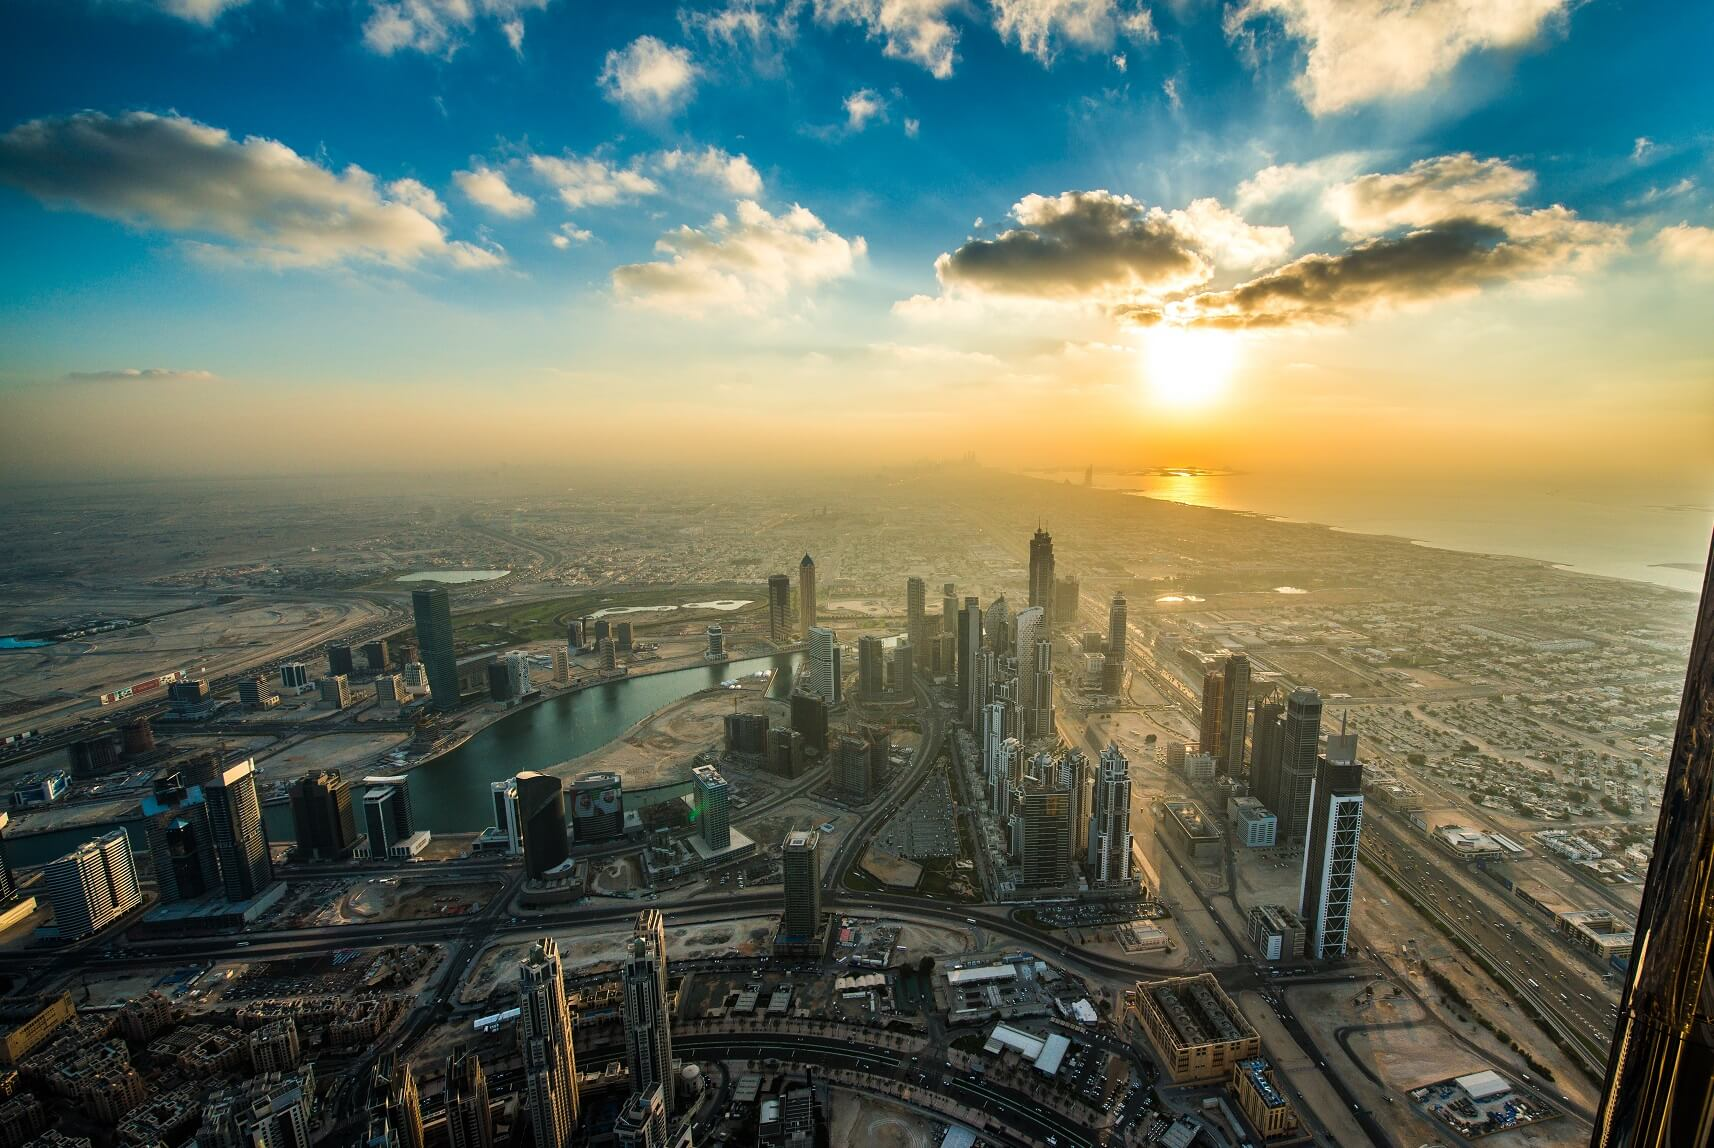 XRP News: Ripple to Open Office in Dubai in Q4 2018, Confirms Nearly 200 Partners